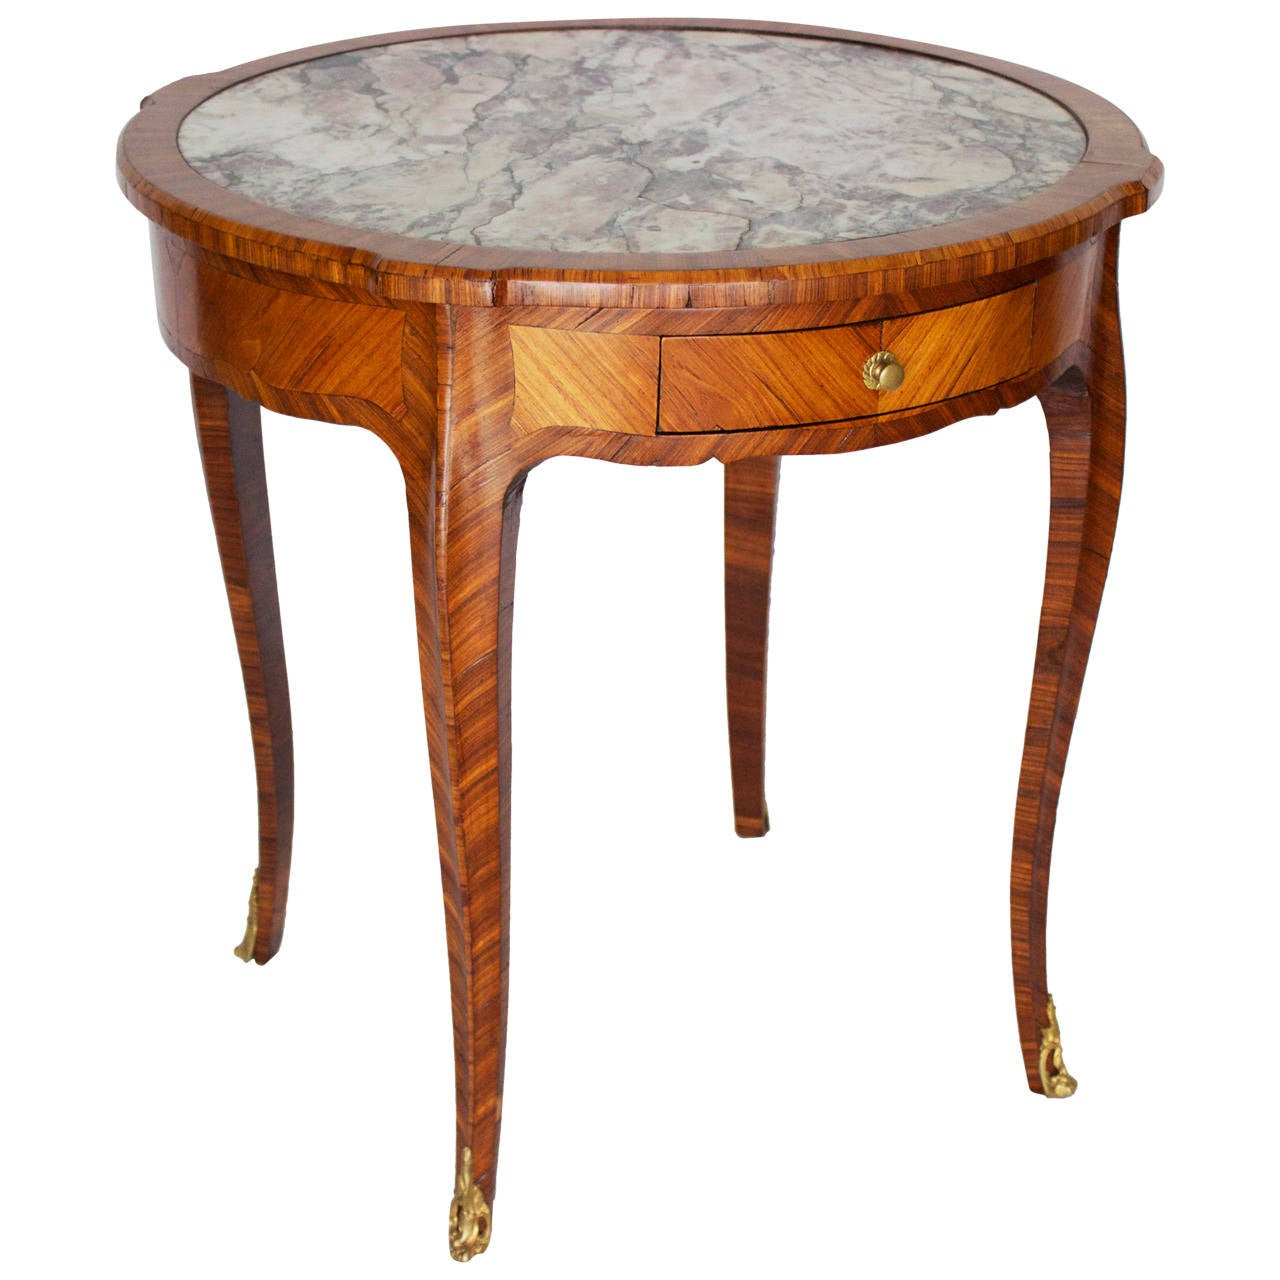 French marquetry louis xv style gueridon or center table with marble top for sale at 1stdibs - Table louis xv ...